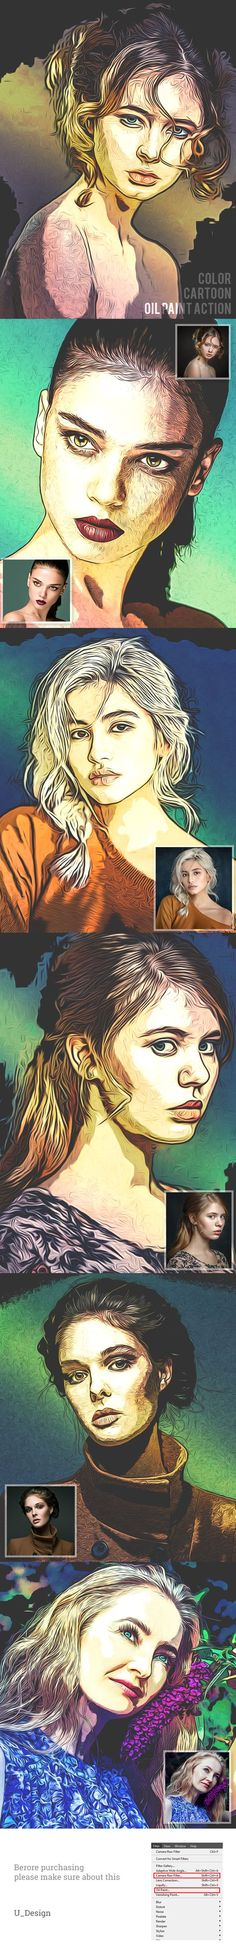 Color Cartoon Oil Paint - Photo Effects Actions